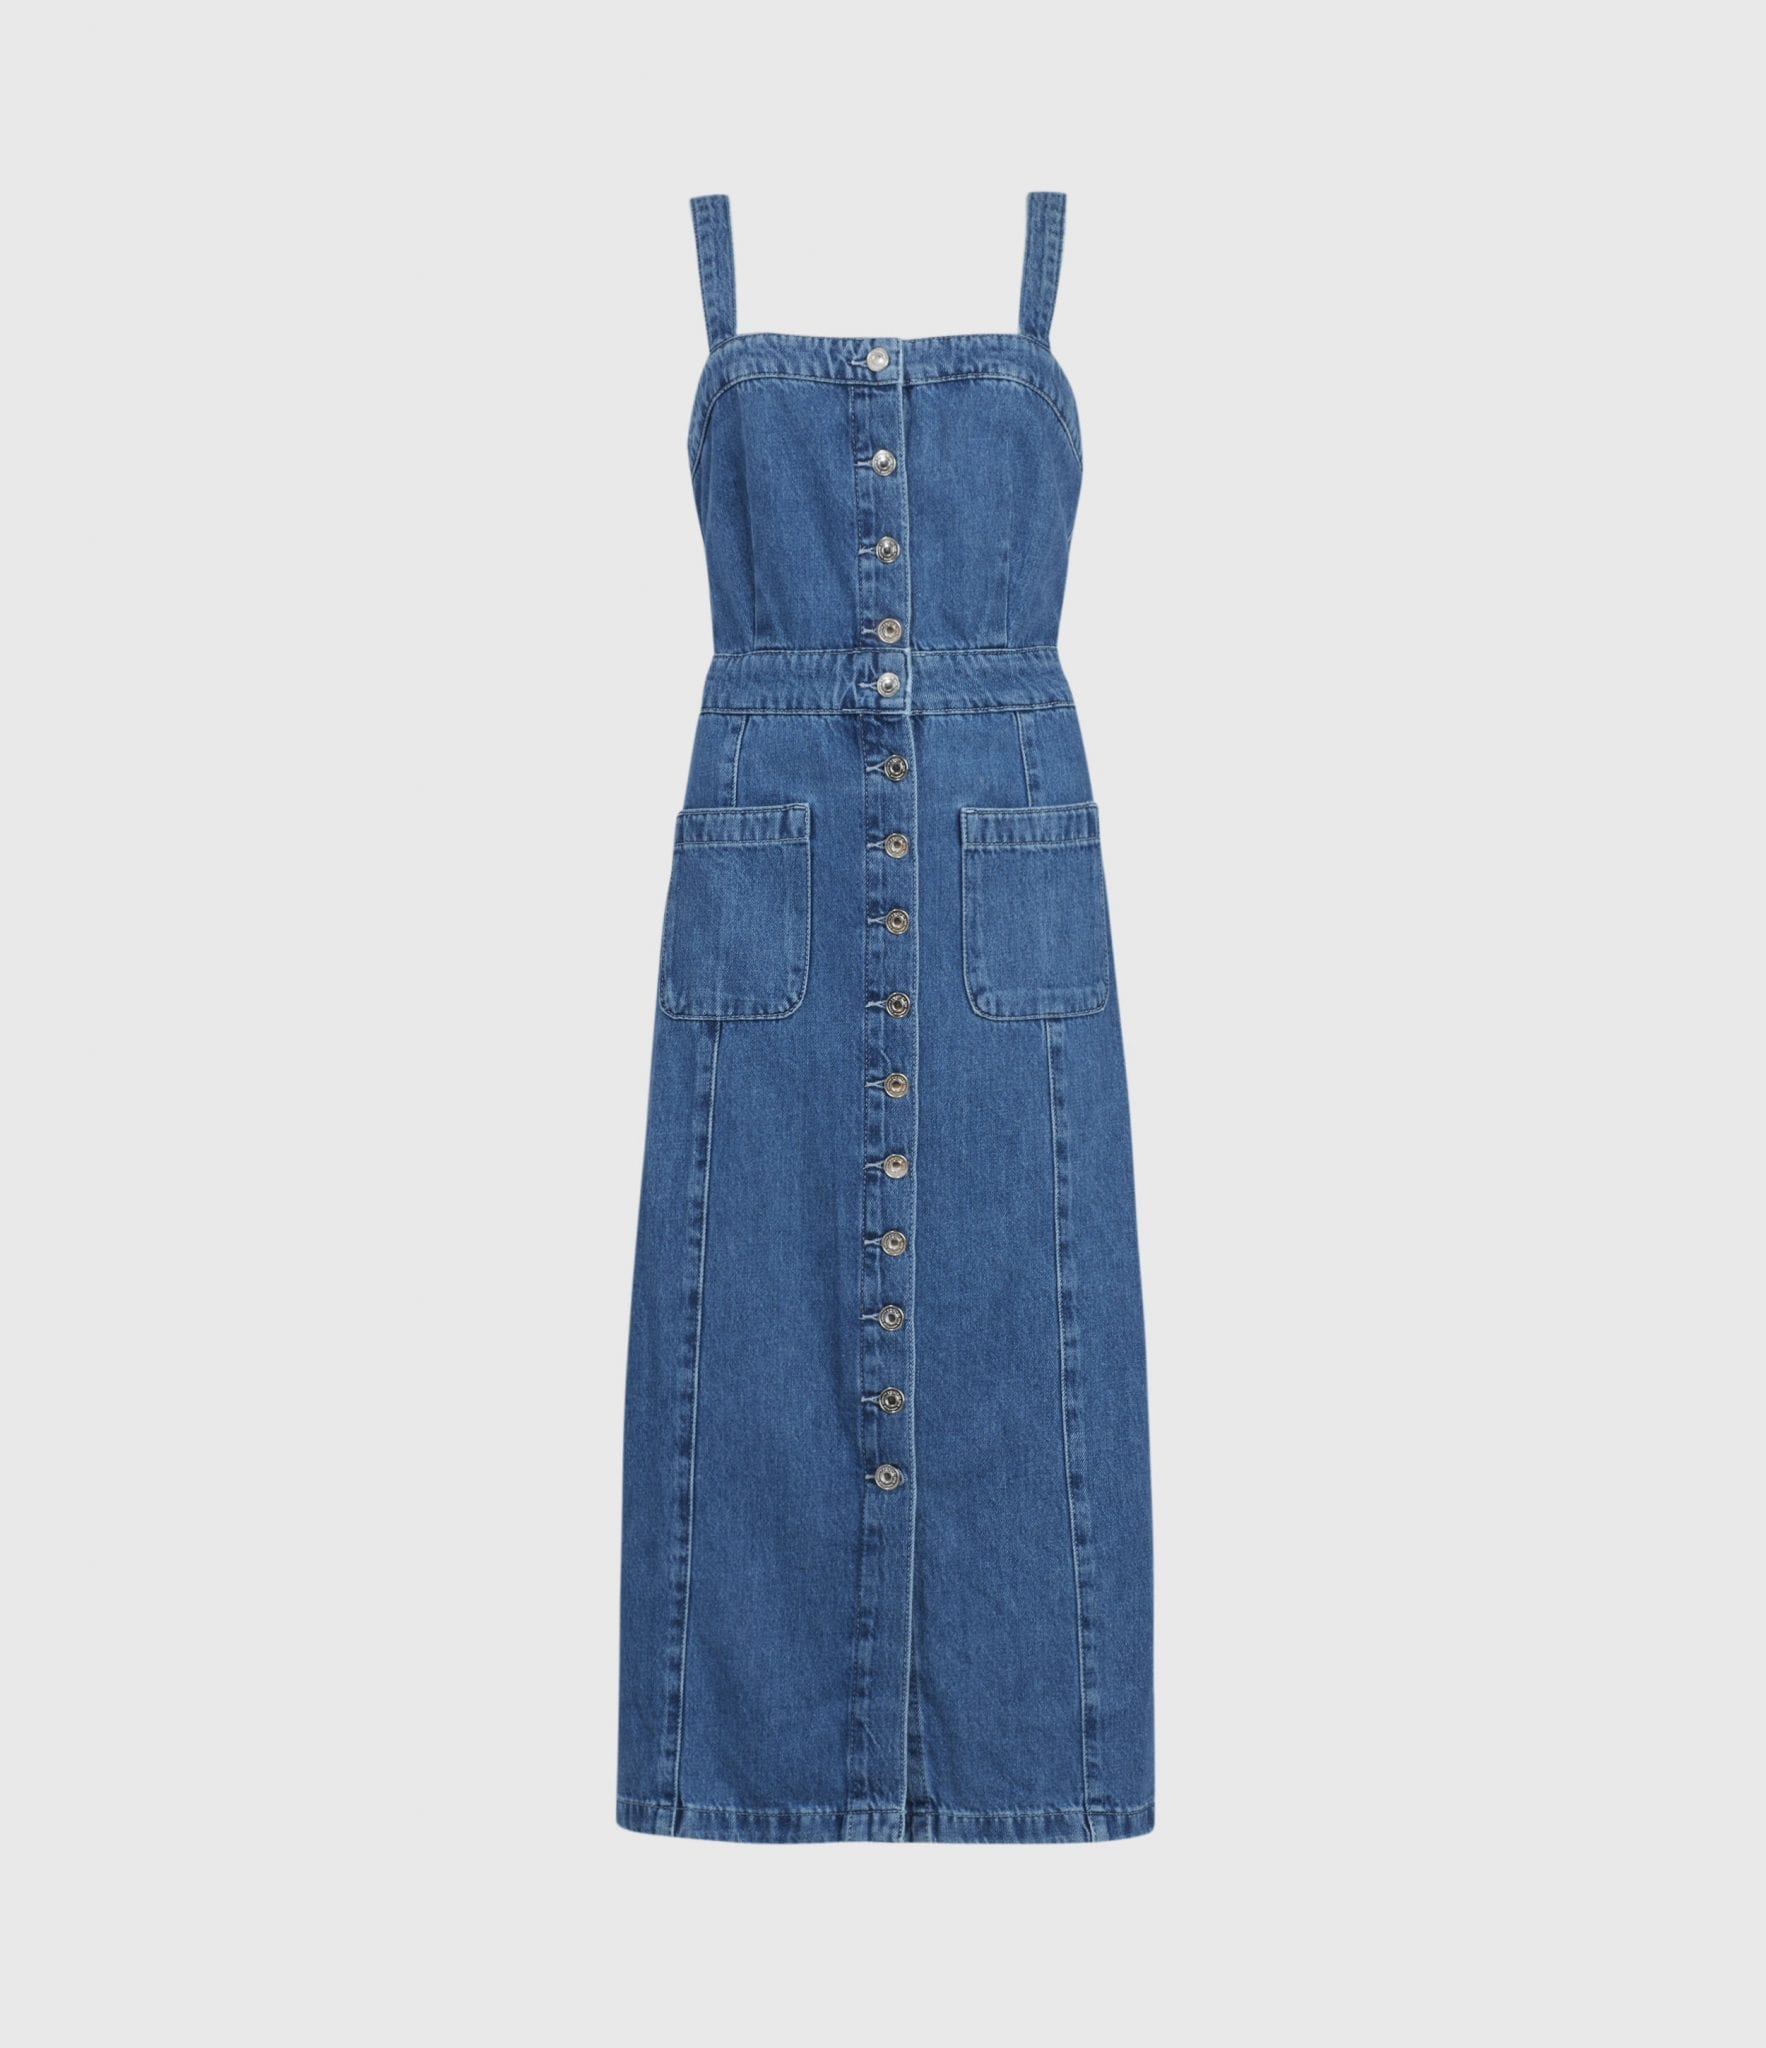 ALLSAINTS Elsie Denim Dress